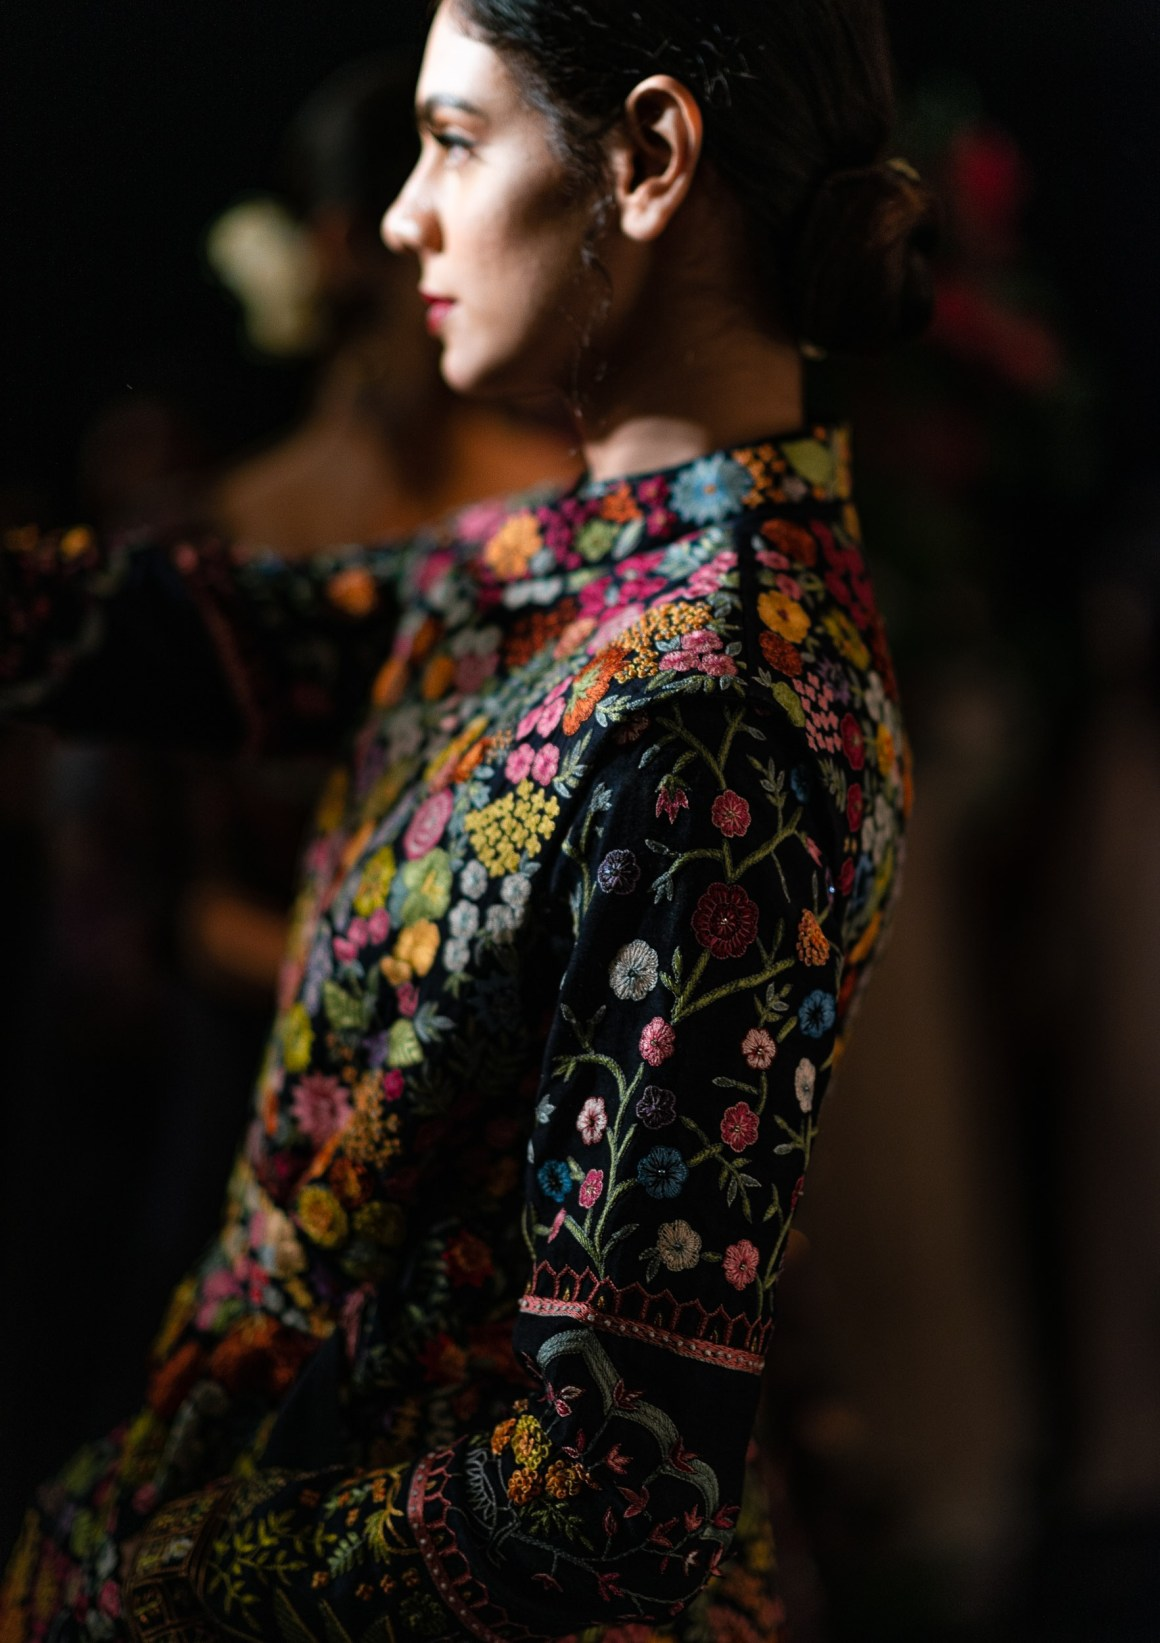 naina.co, naina redhu, rahul mishra, india couture week 2019, couture week, FDCI, taj palace new delhi, taj palace, indian couture, made in india, madeinindia, make in india, makeinindia, eyesforfashion, nainaxrahulmishra, fashion week, fashion show, runway, photography client, photography assignment, fashion photography, runway photography, malhausi, monaco, embroidery, french knots, divya mishra